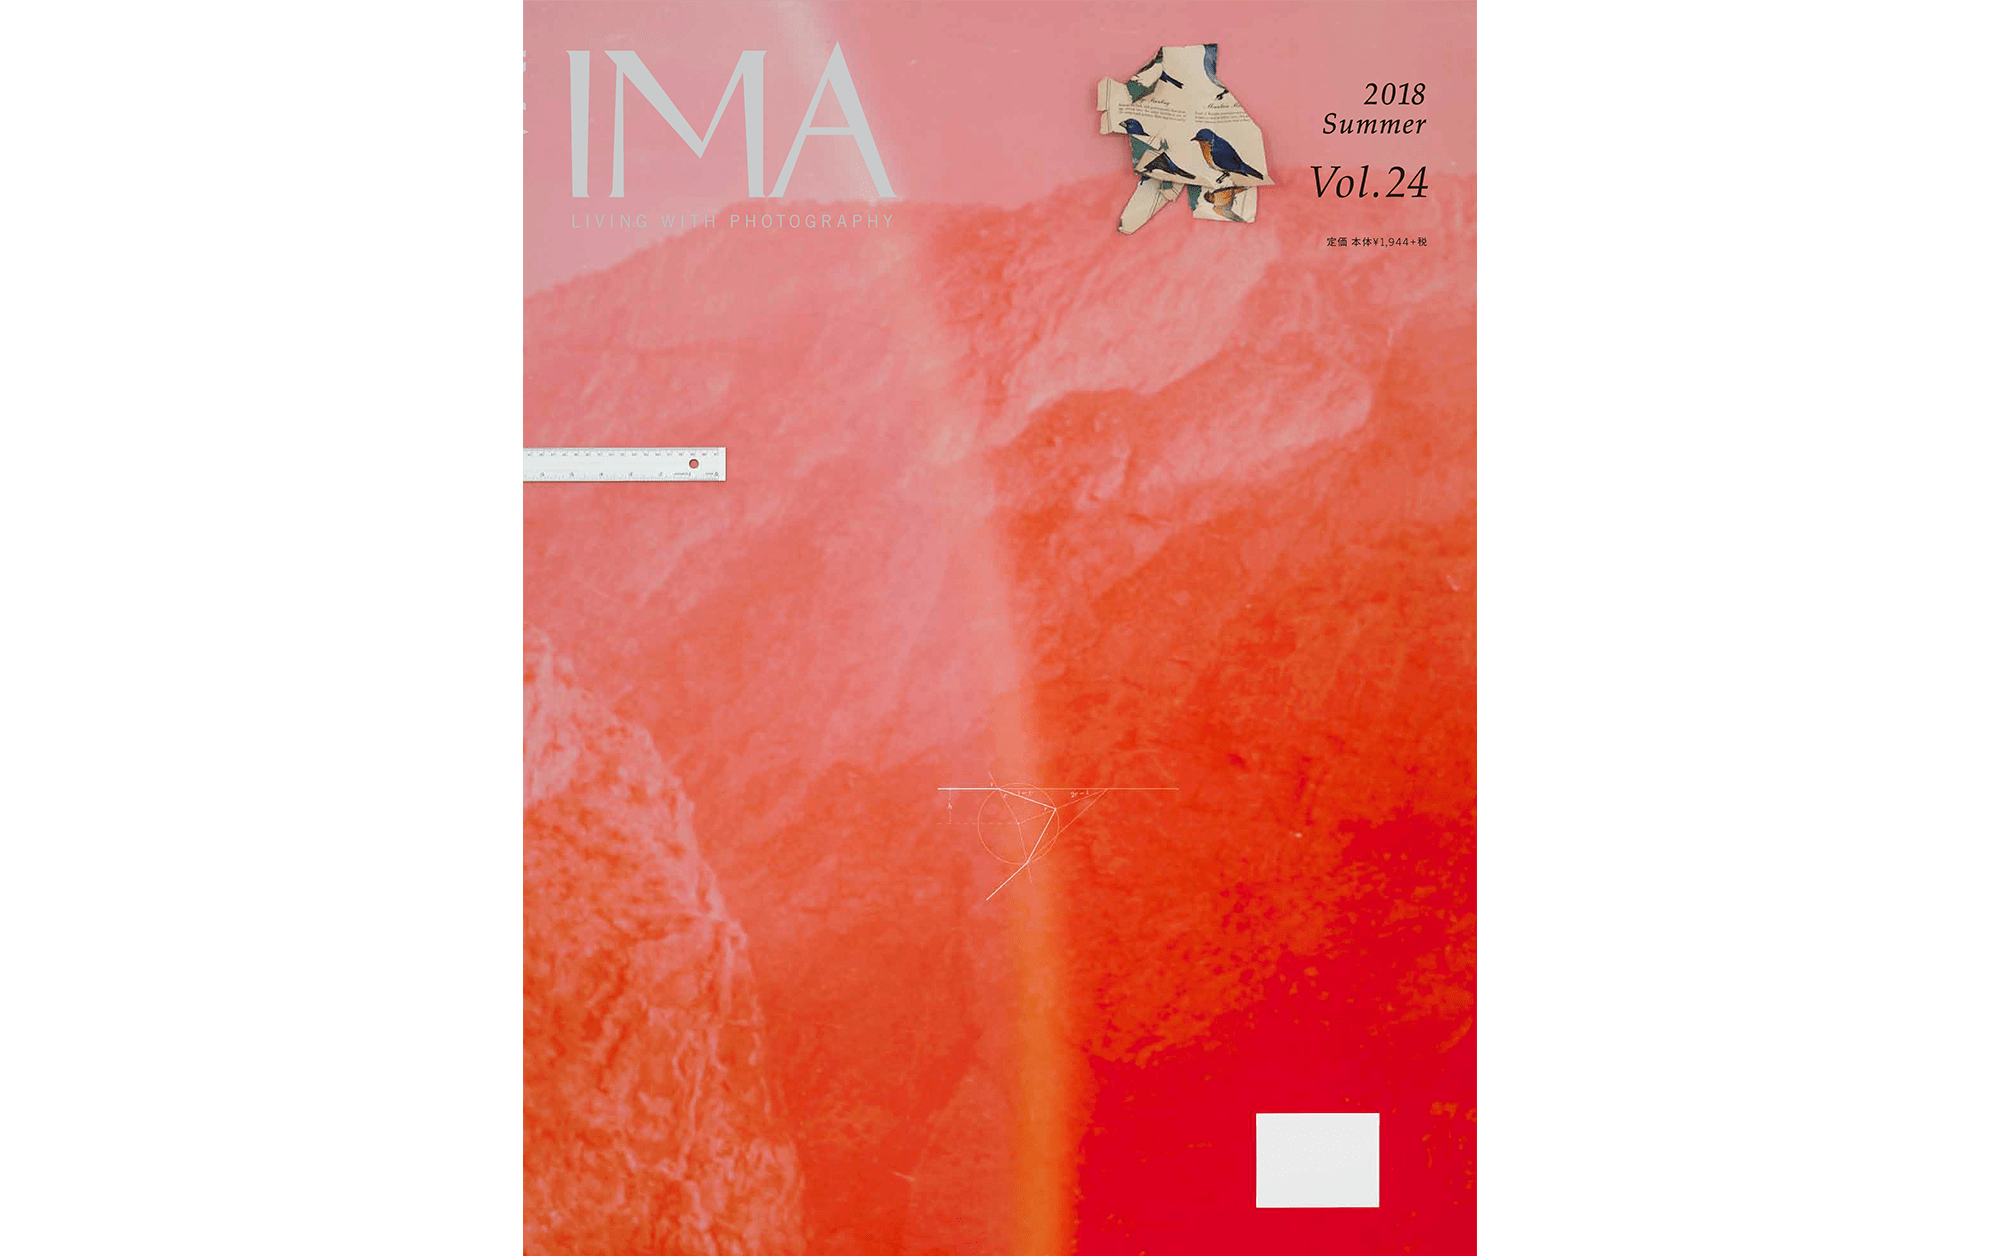 IMA 2018 Summer Vol.24 © Jiehao Su